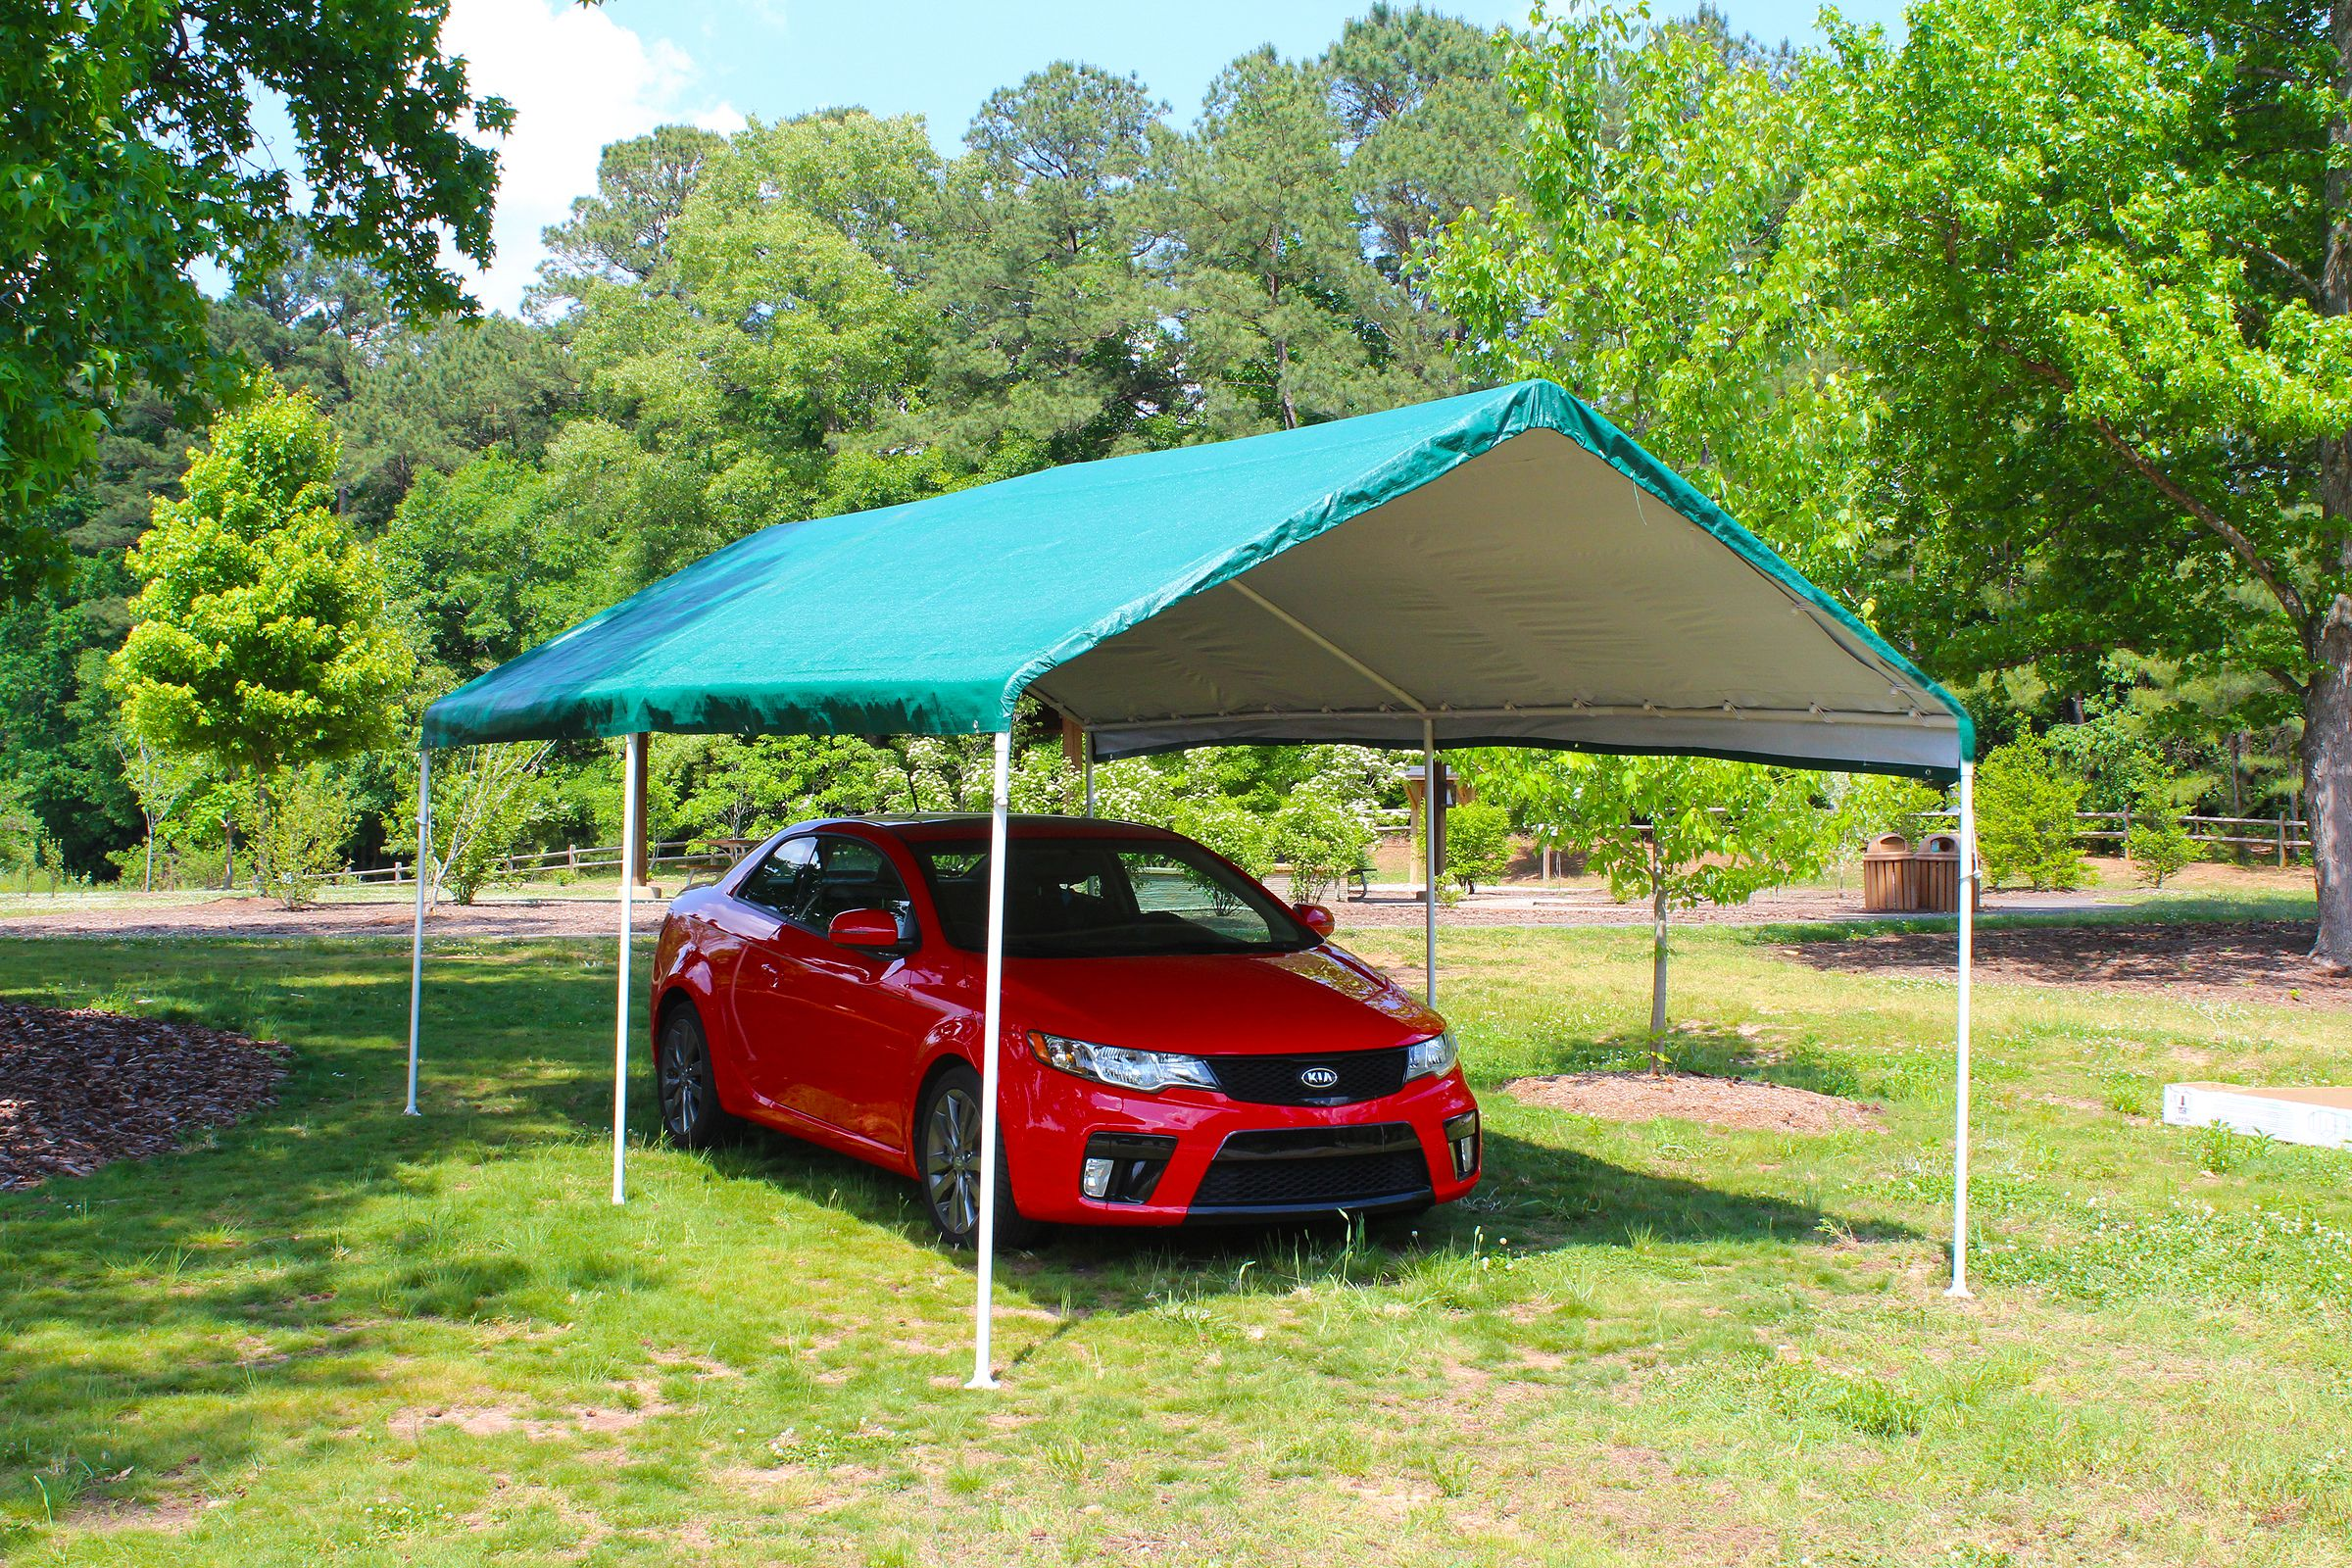 Universal 6 Leg 10 X20 Green Canopy Www Kingcanopy Com Canopy Portable Shade Patio Umbrella